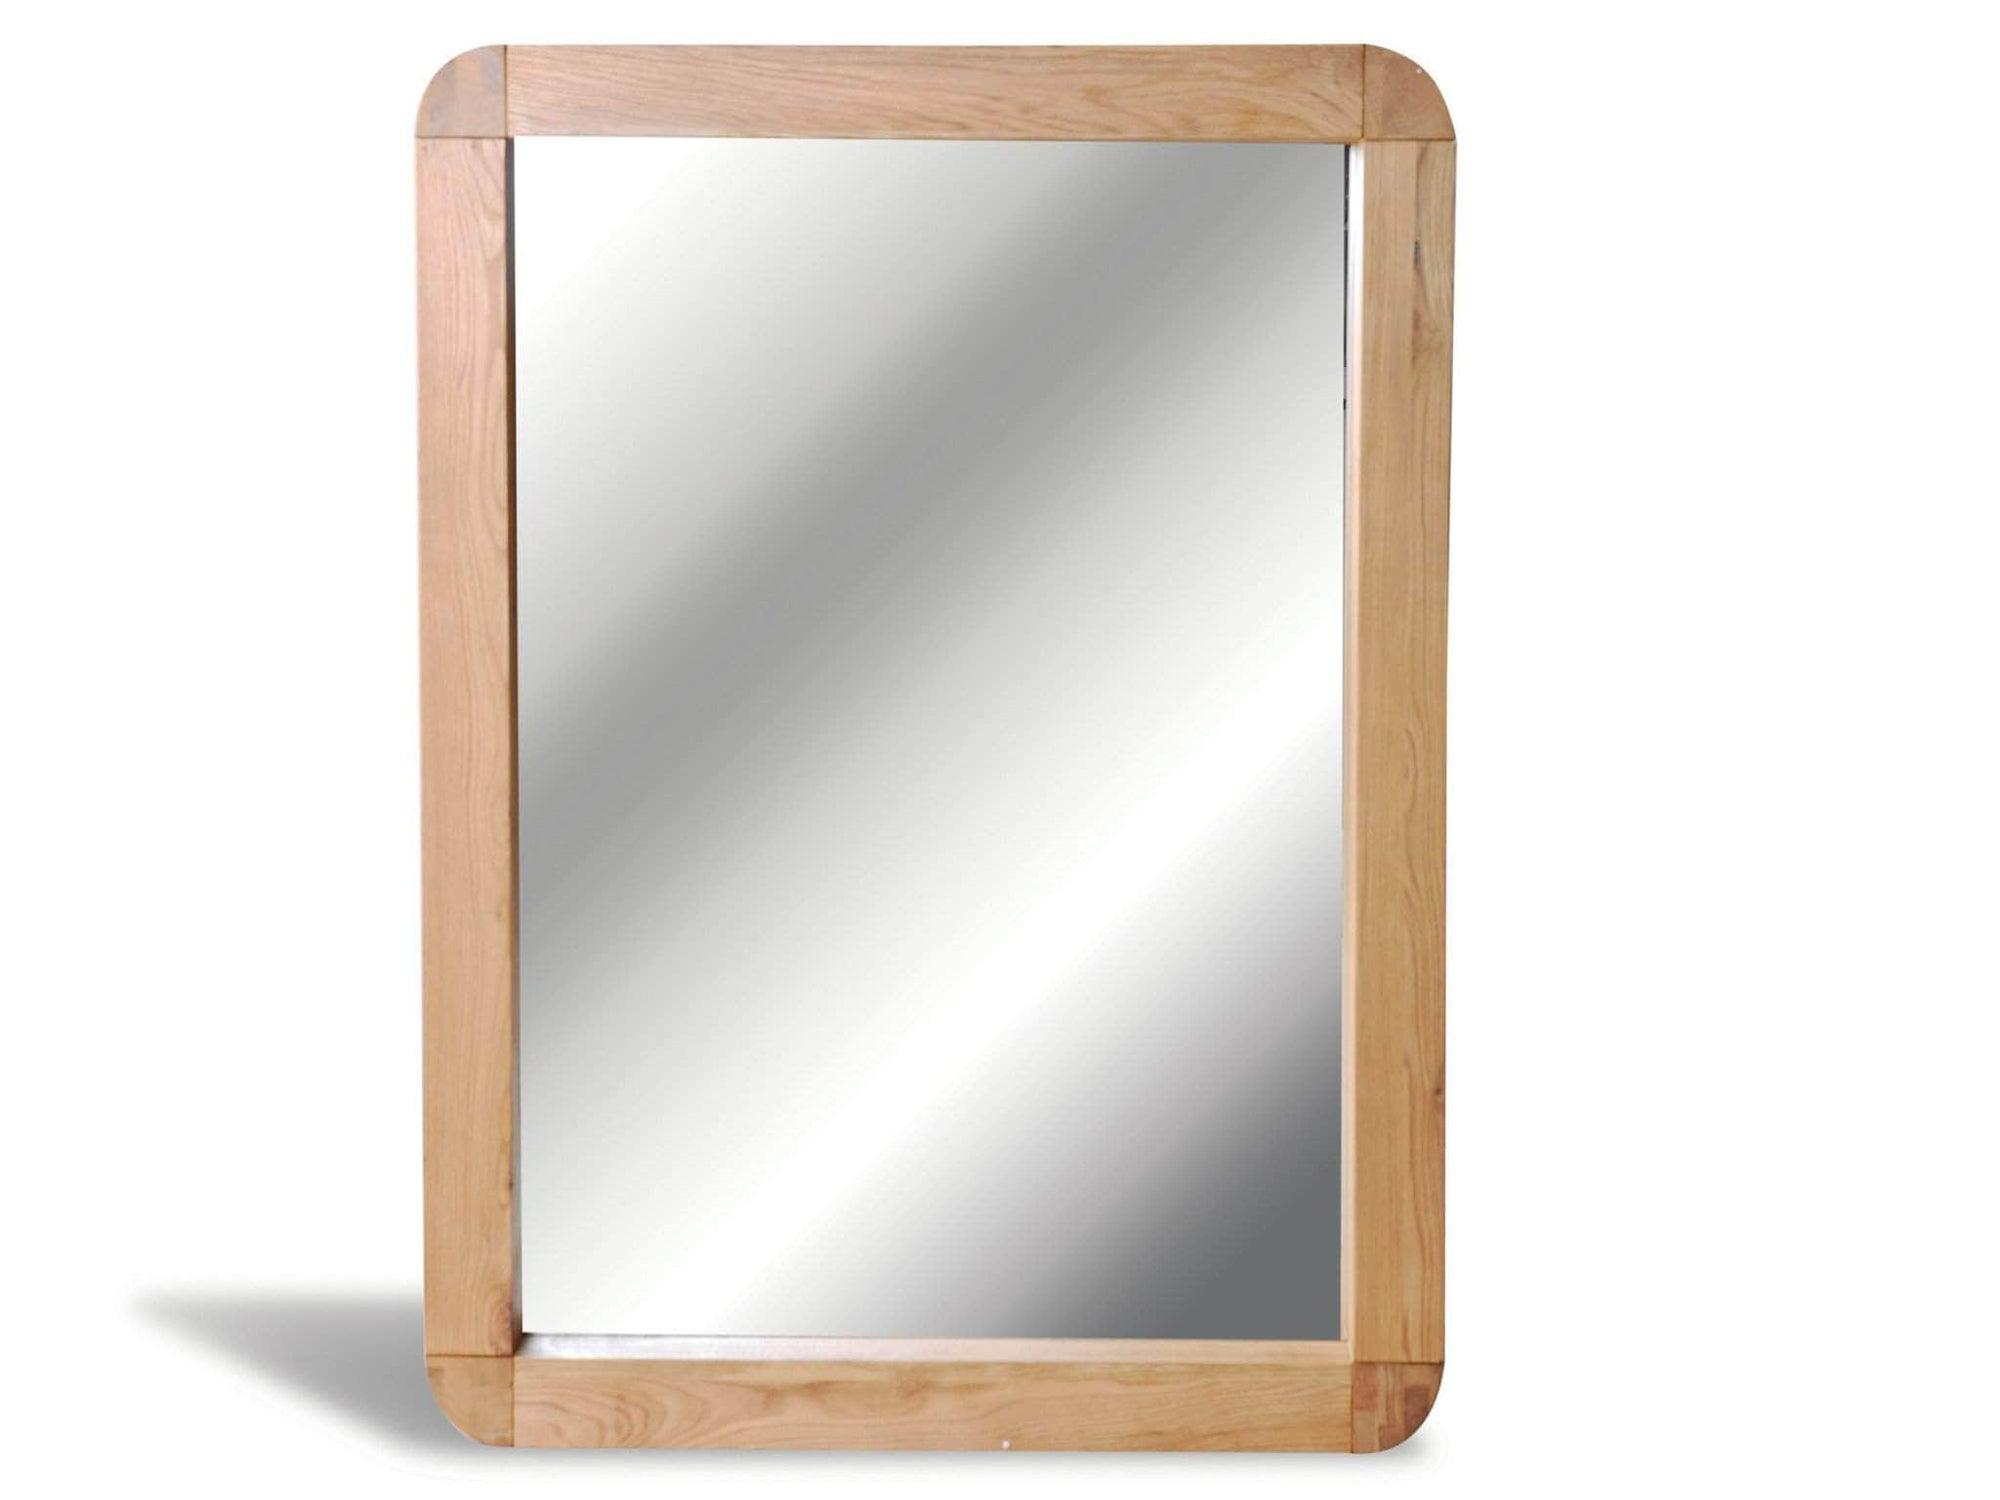 Contemporary solid oak mirror with rounded corners